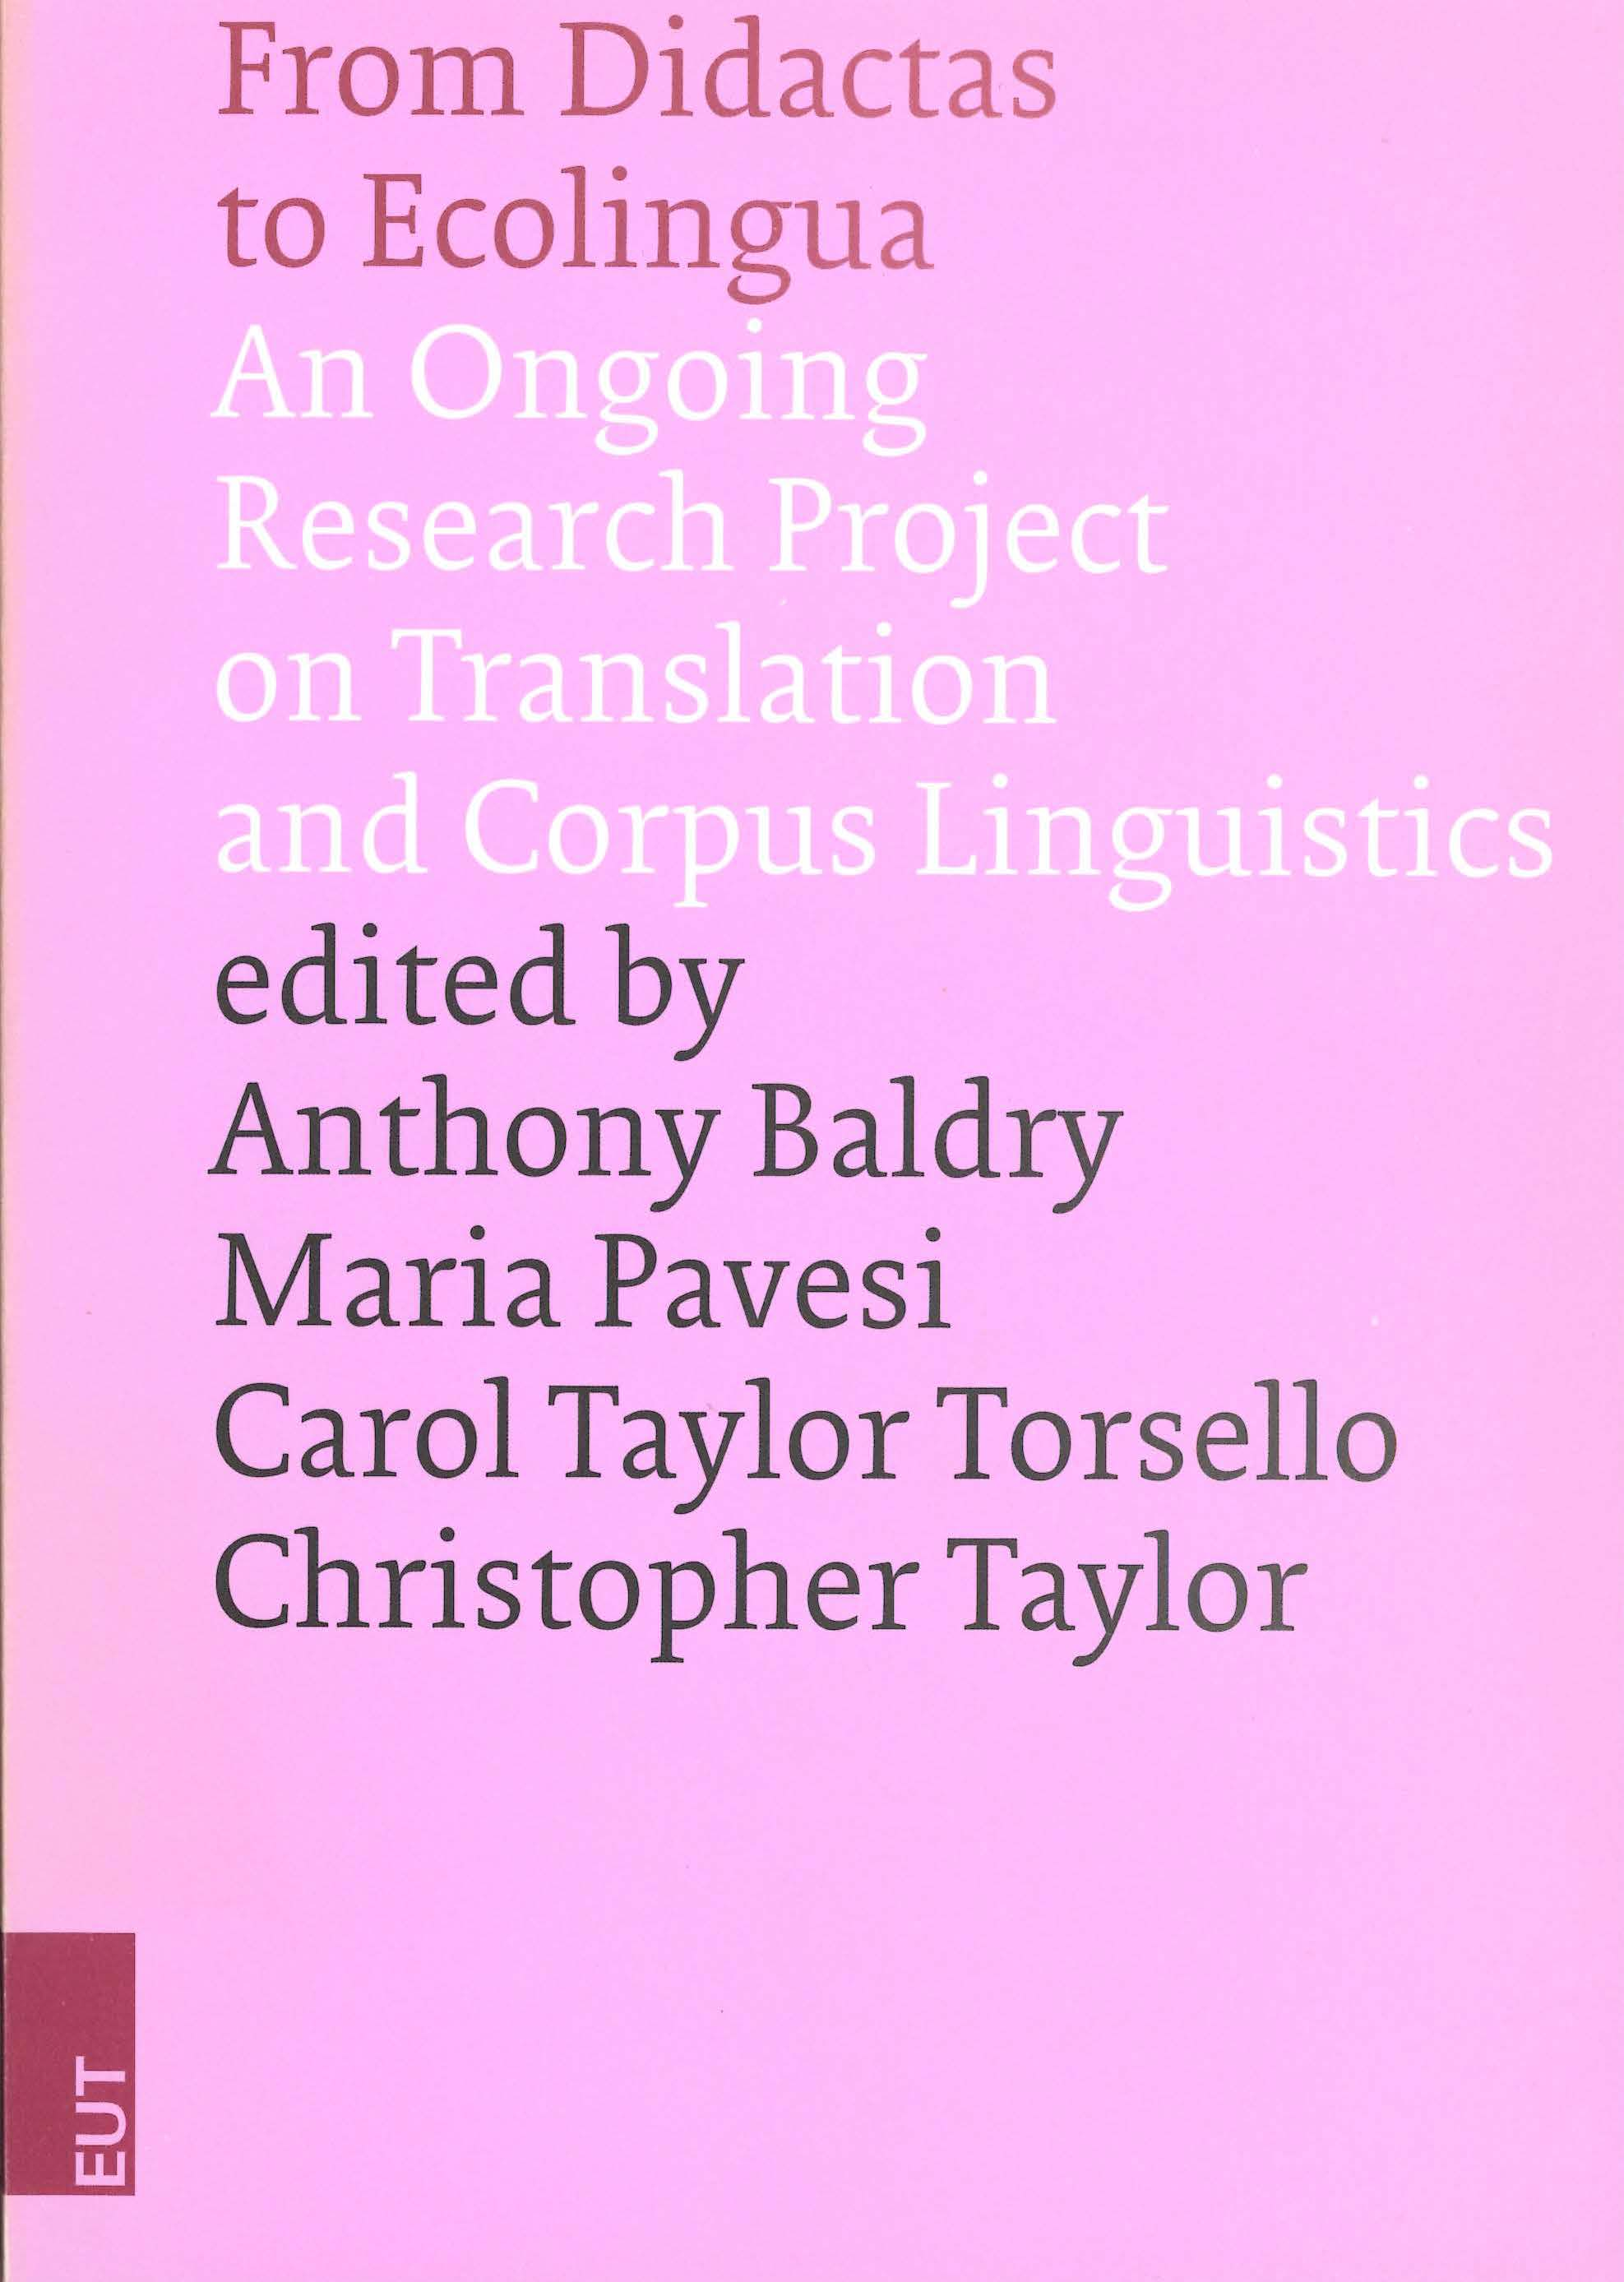 From Didactas to Ecolingua: an ongoing research project on translation and corpus lingiustics